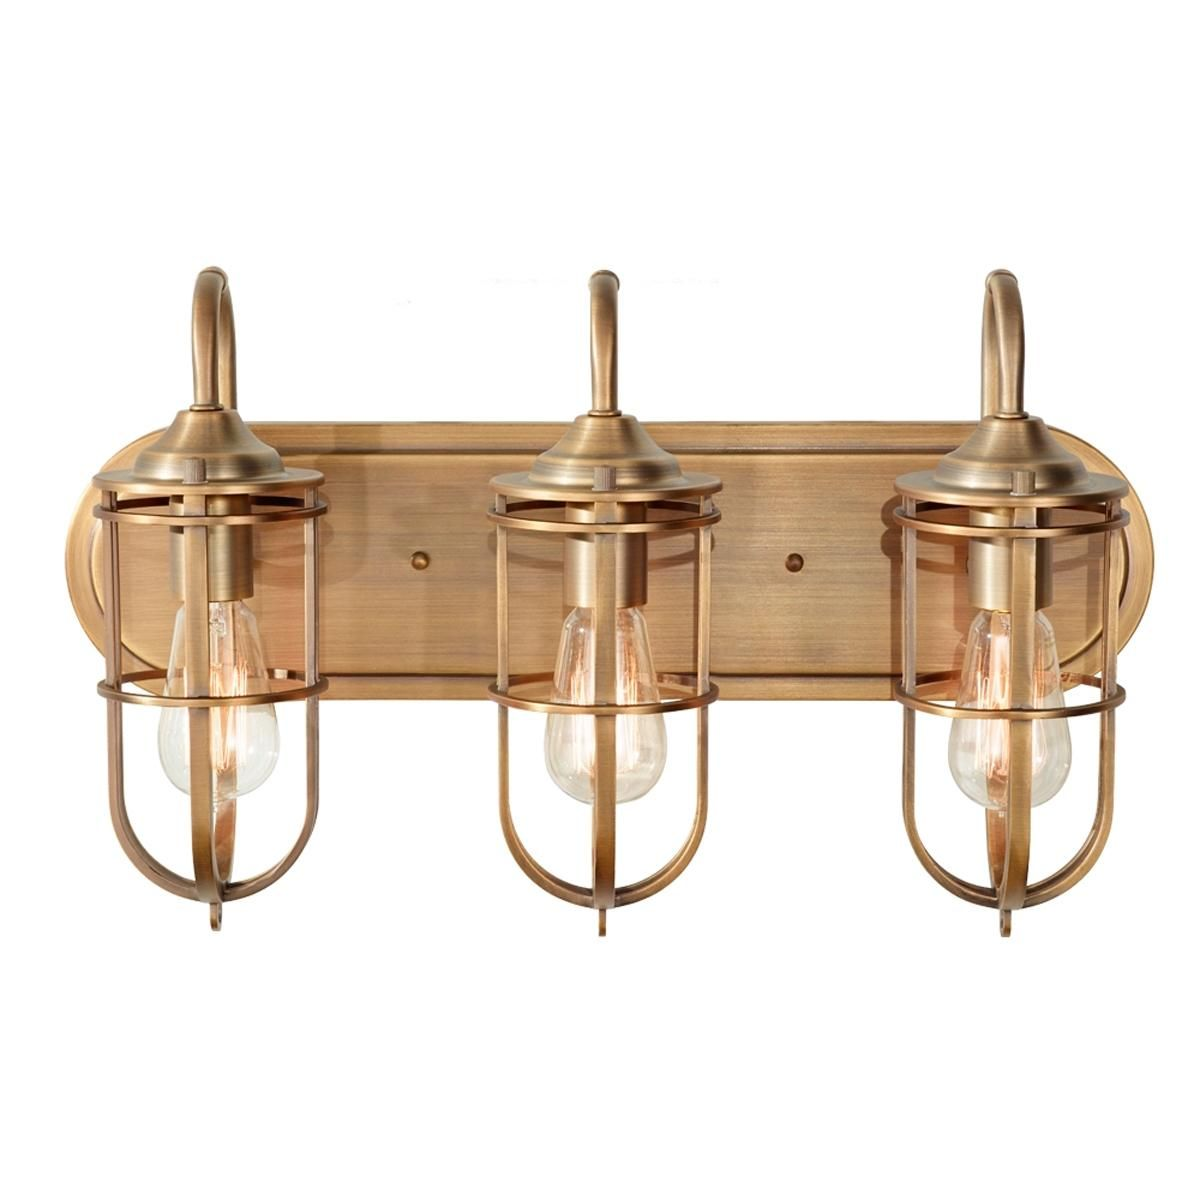 Nautical cage bath light 3 light bath light industrial style nautical cage 3 light bath light restoration and industrial style merge in this quality bath light made of steel and finished in heirloom brass aloadofball Choice Image